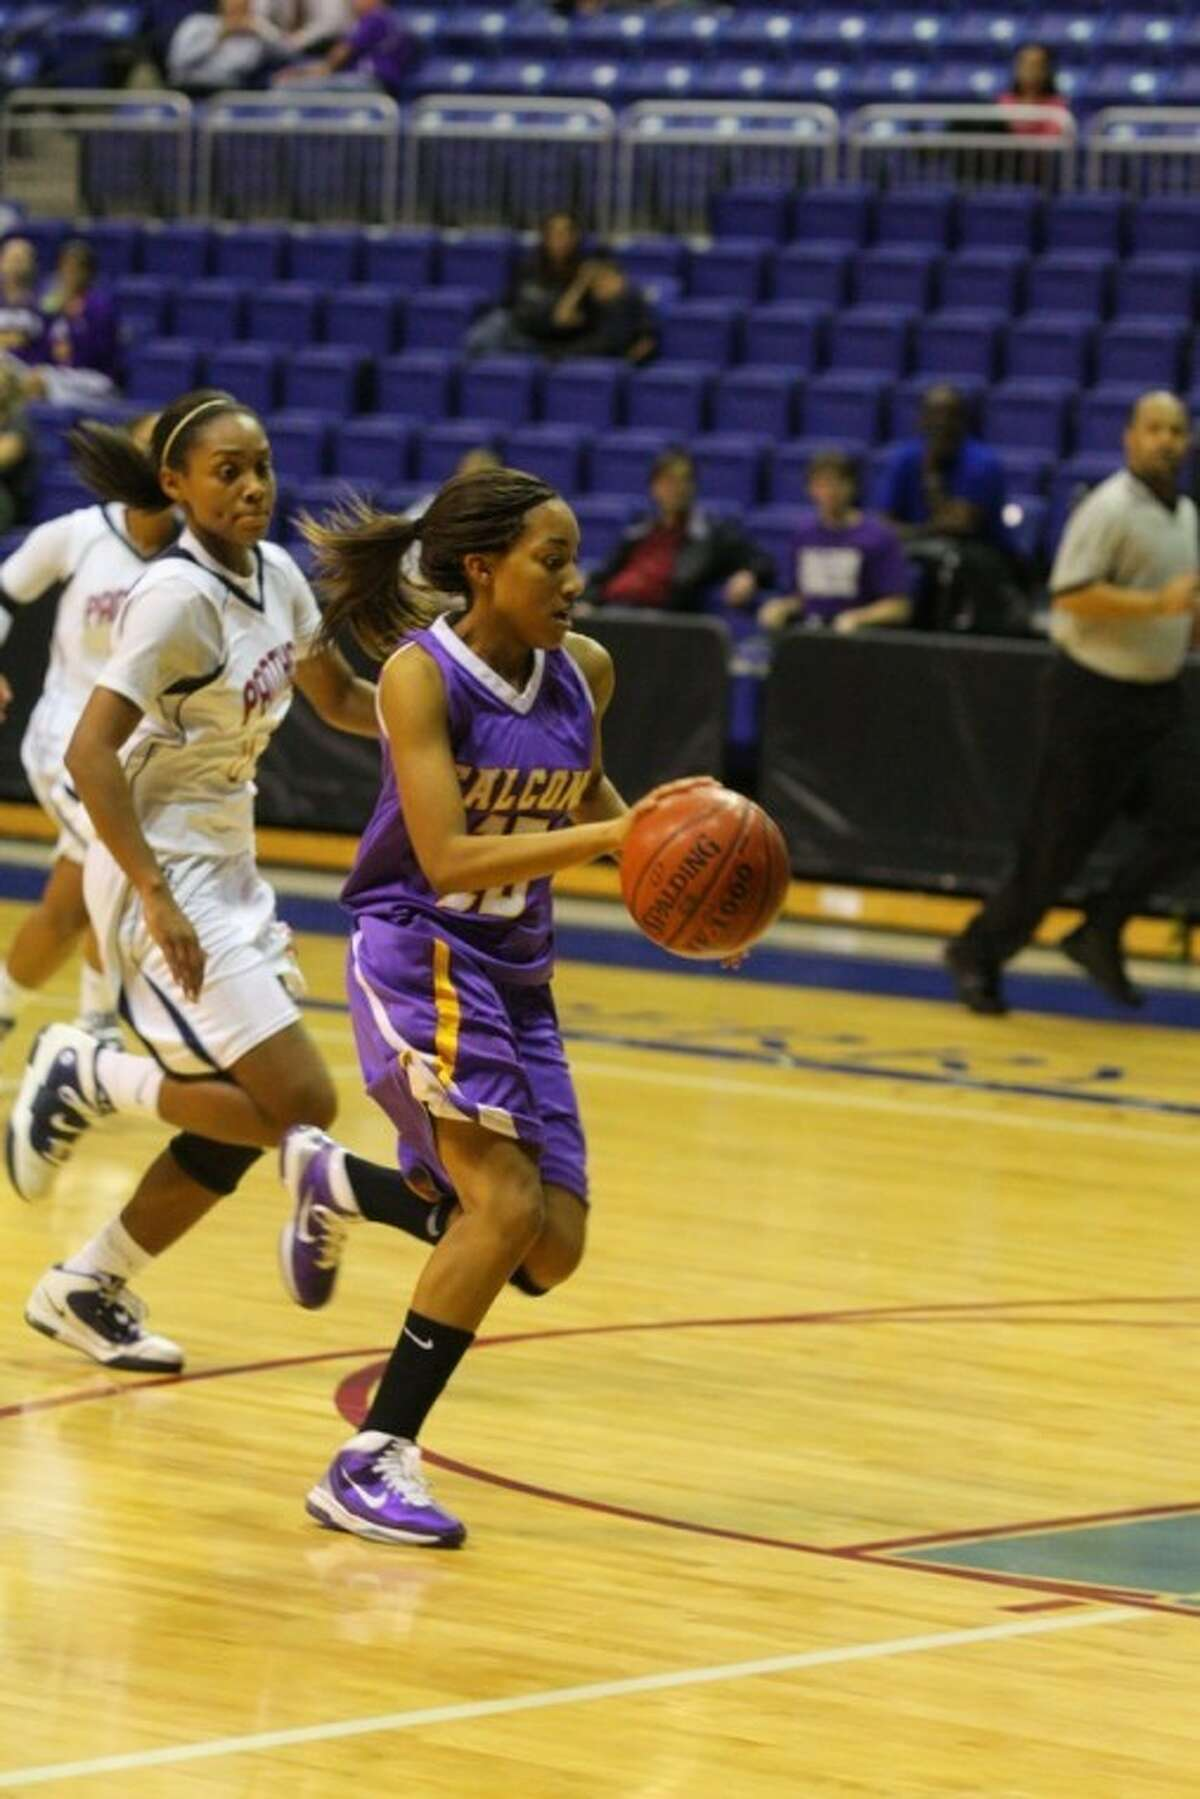 The Jersey Village High girls basketball team improved to 2-1 in Class 5A-District 17 competition with a 43-27 victory over Cy Springs on Tuesday at the Berry Center.